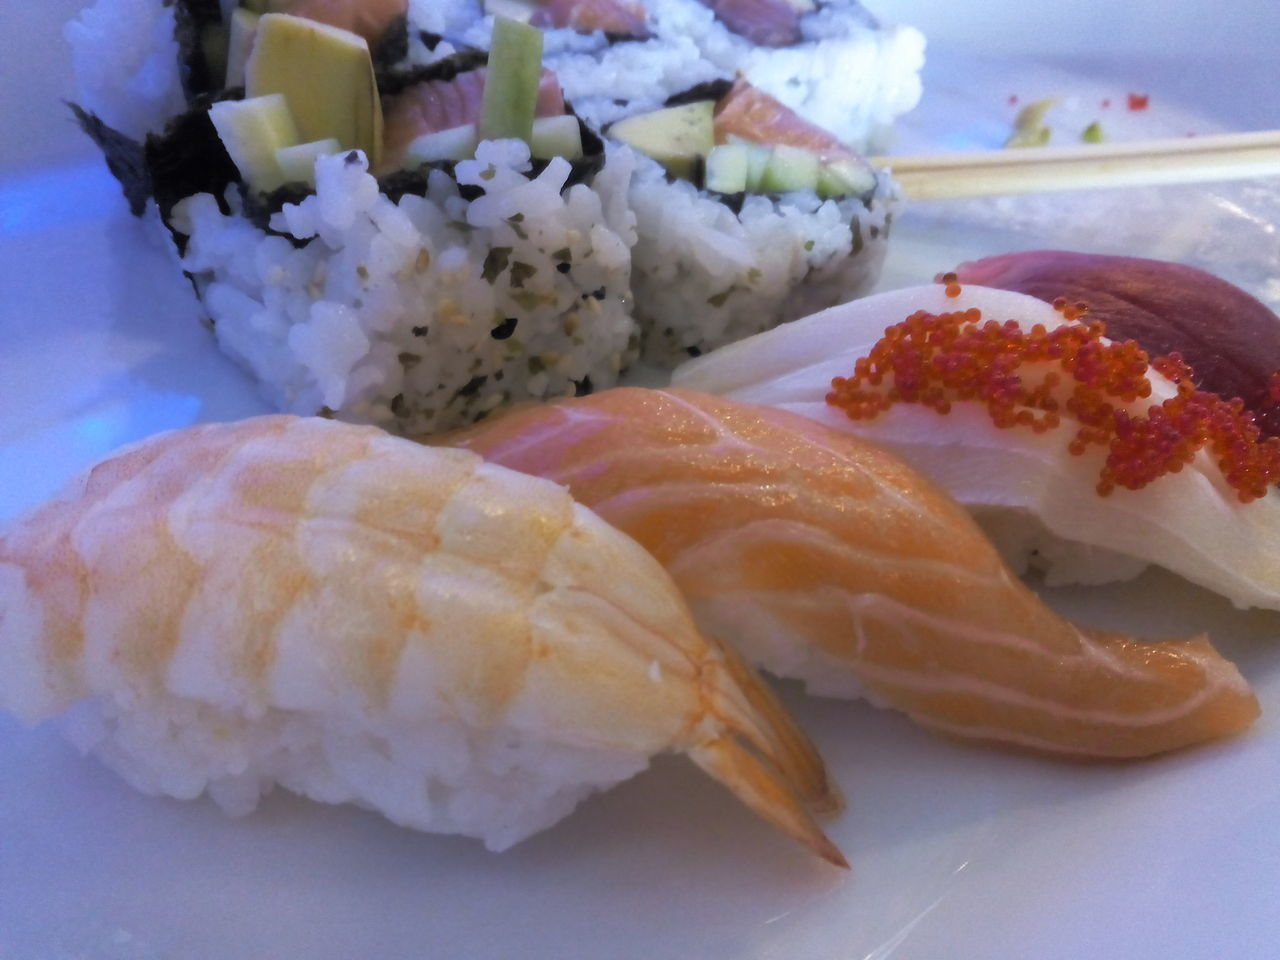 seafood, food, food and drink, freshness, sushi, healthy eating, plate, japanese food, rice - food staple, ready-to-eat, serving size, fish, indoors, no people, salmon, close-up, day